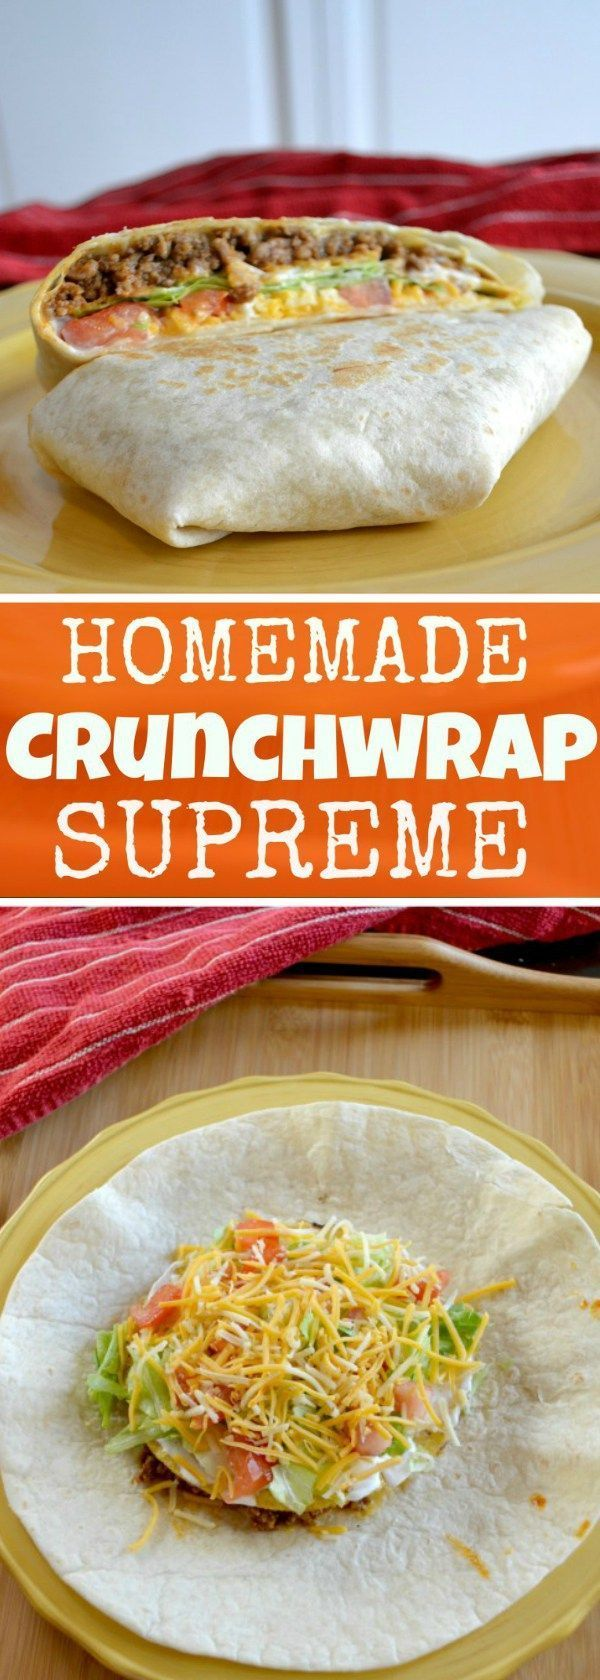 Forget going to Taco Bell! You can make this delicious Crunchwrap Supreme at home (With as much sour cream as your heart desires!)